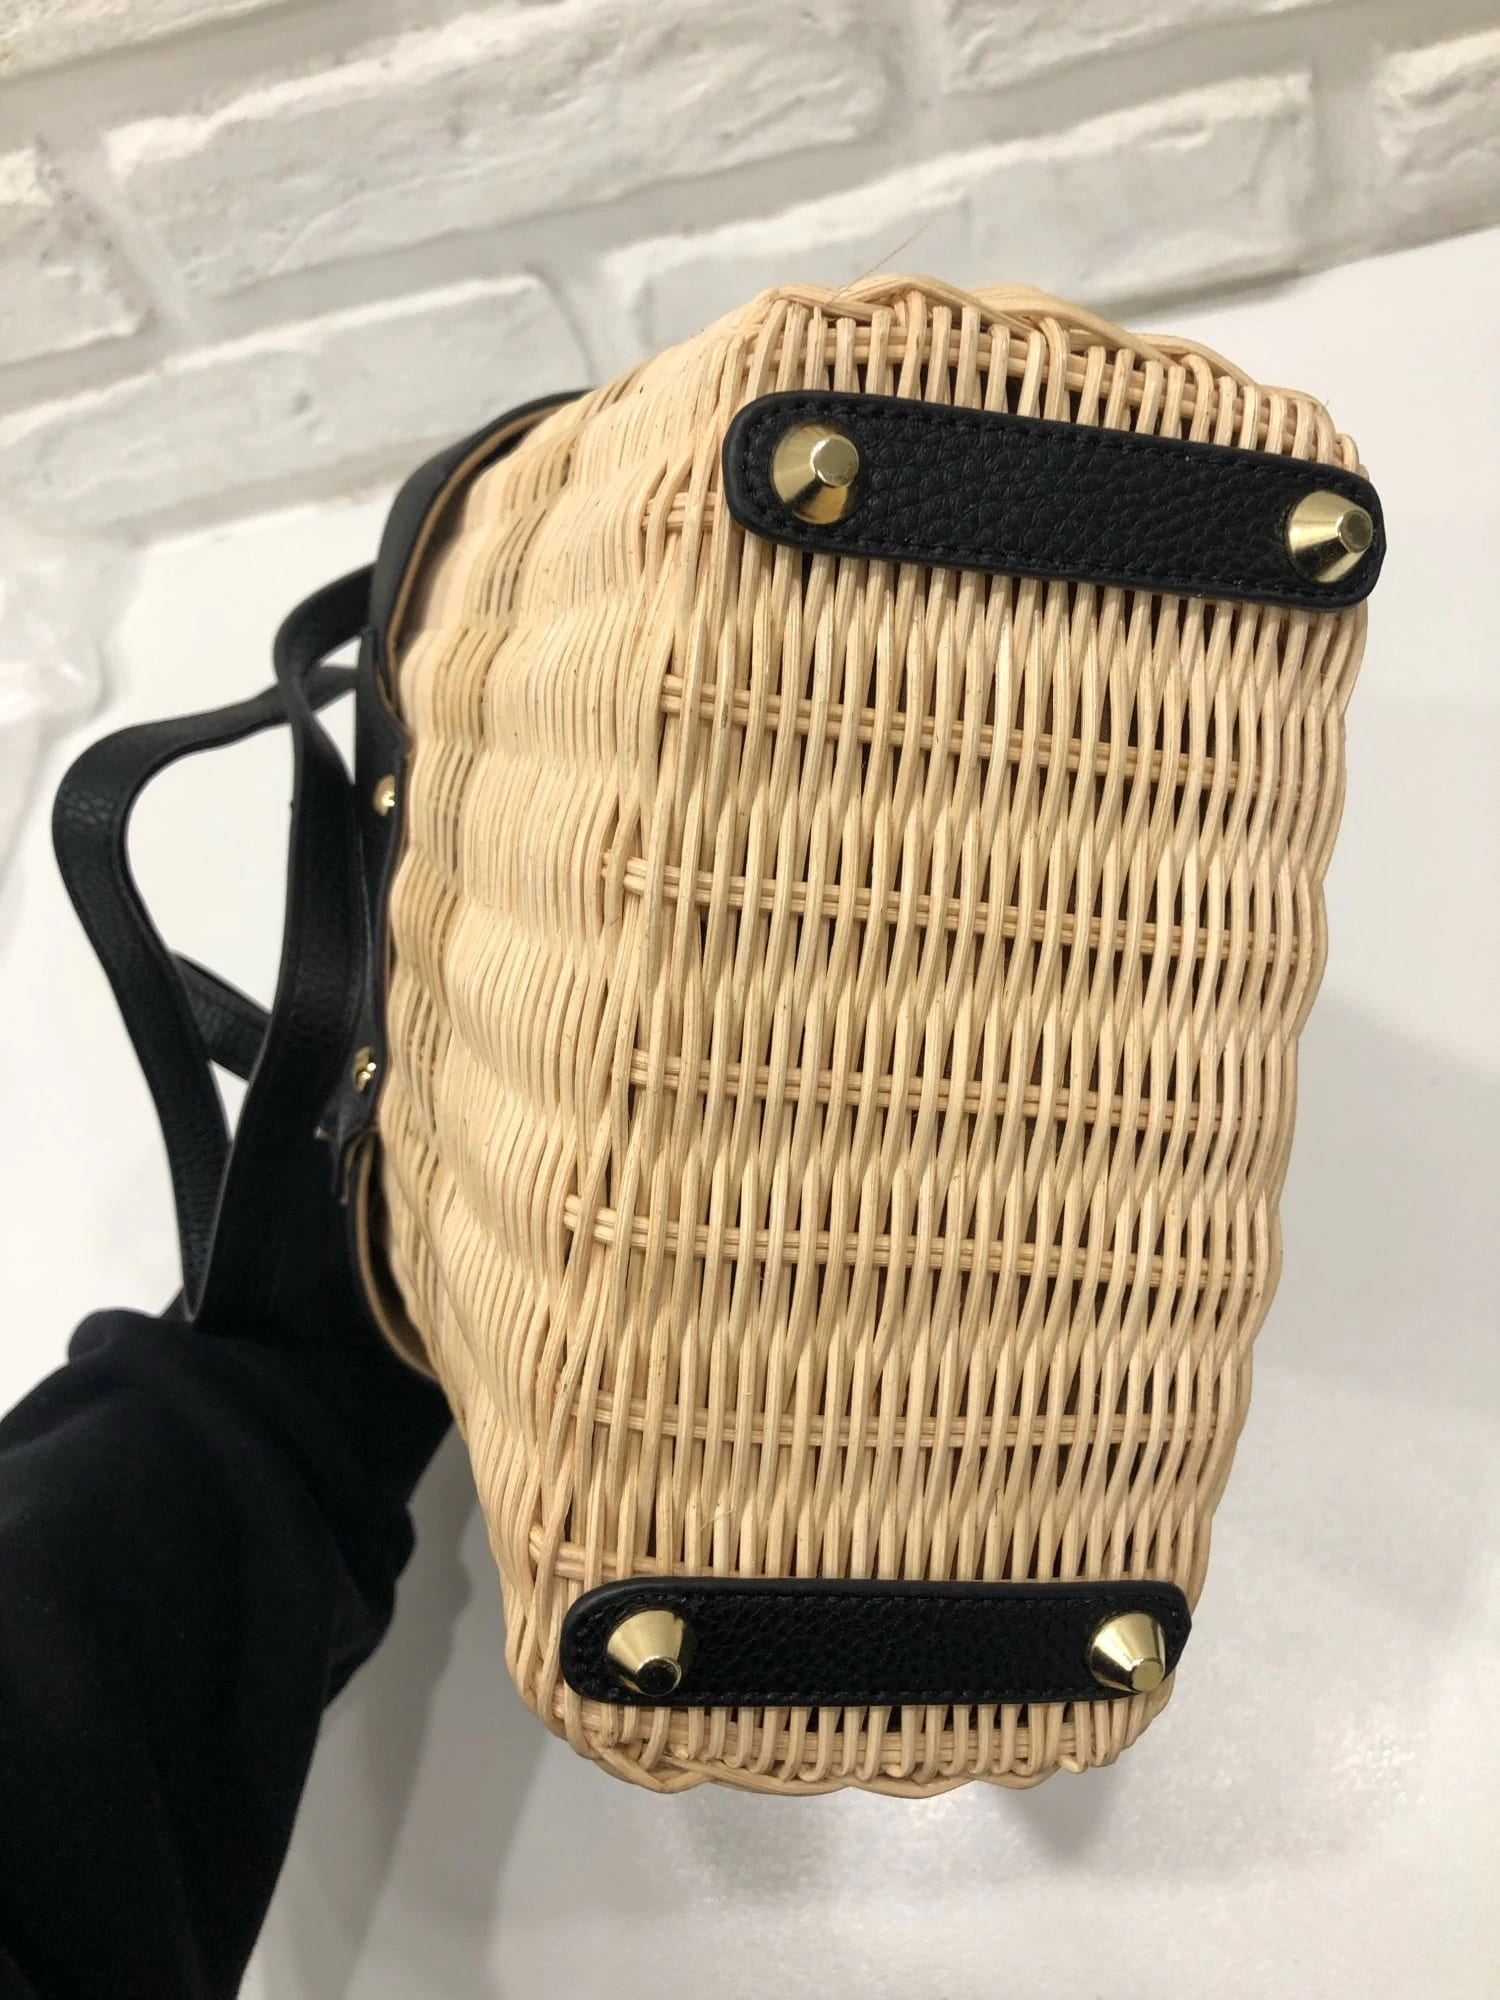 How many bamboo woven purse 2021